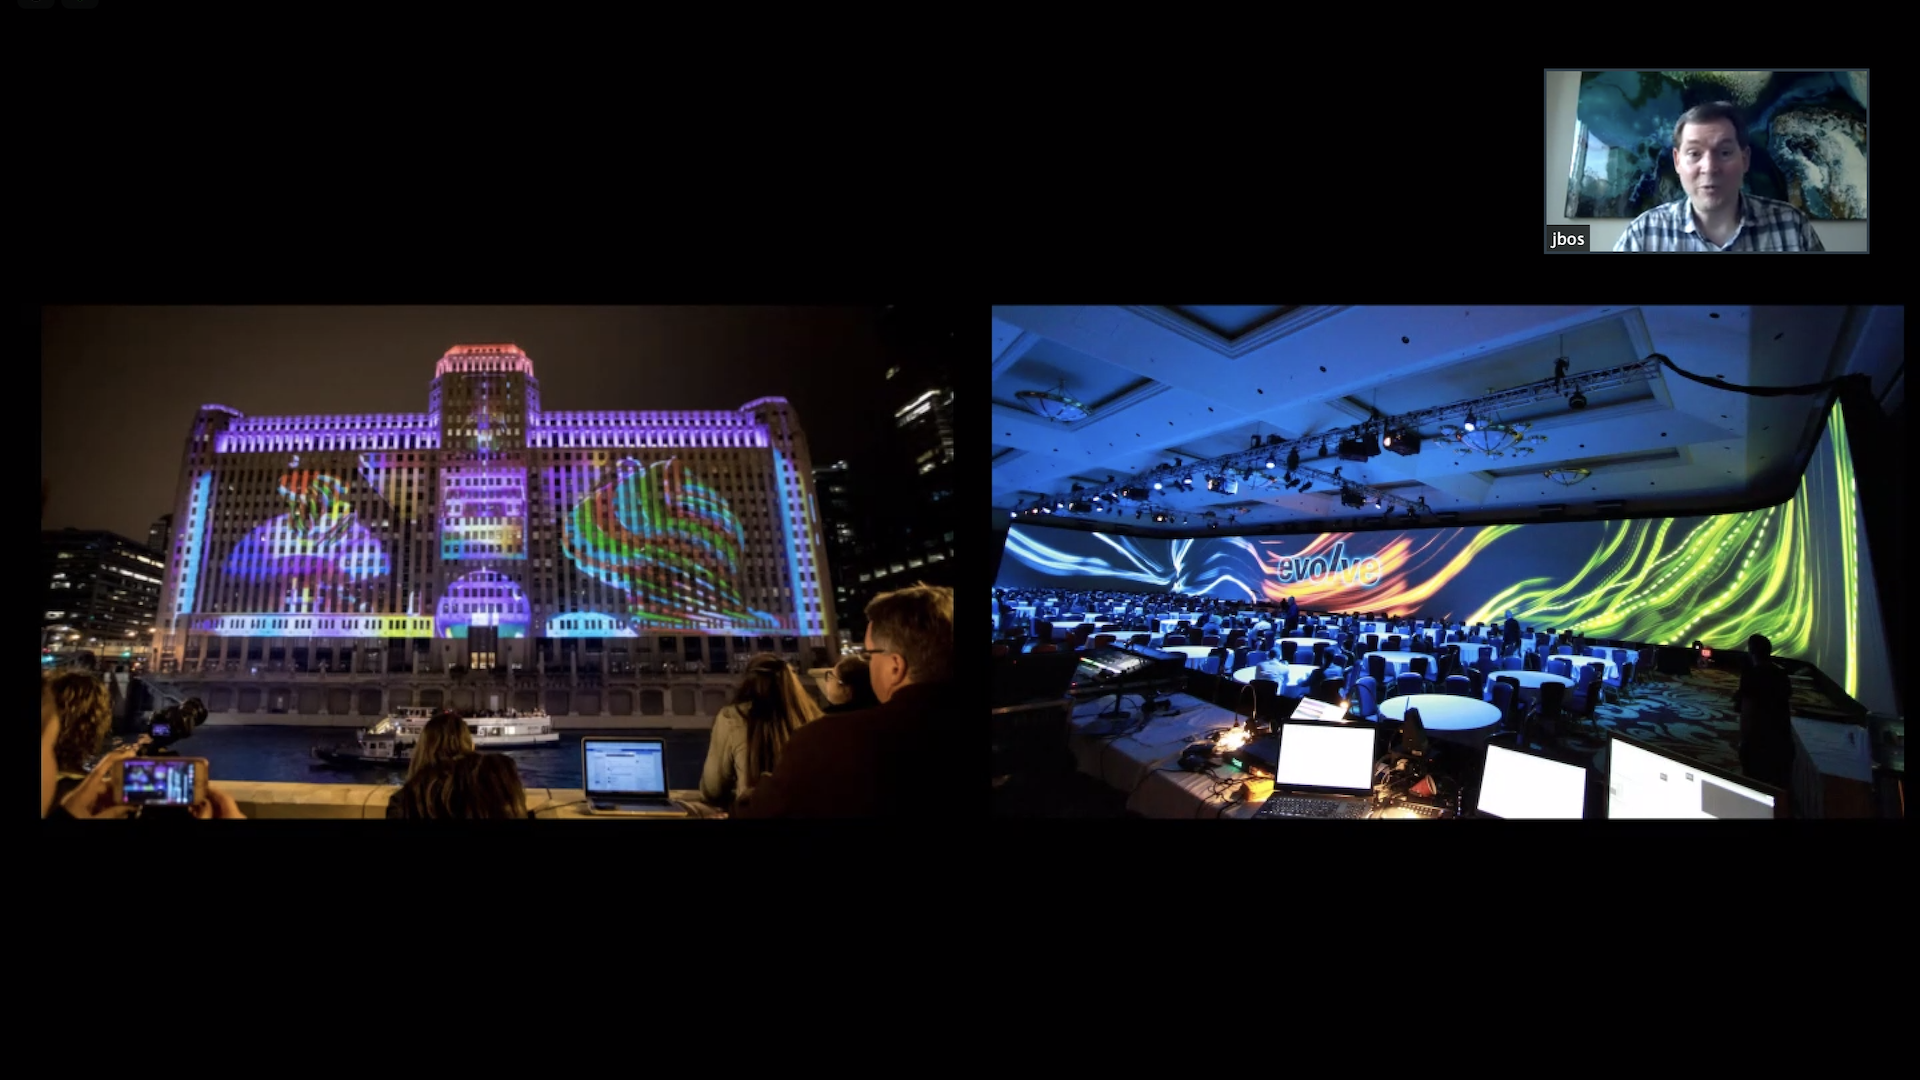 A colourful design broadcast from a projector onto the outside wall of a building (left) and a large screen in a convention hall (right).